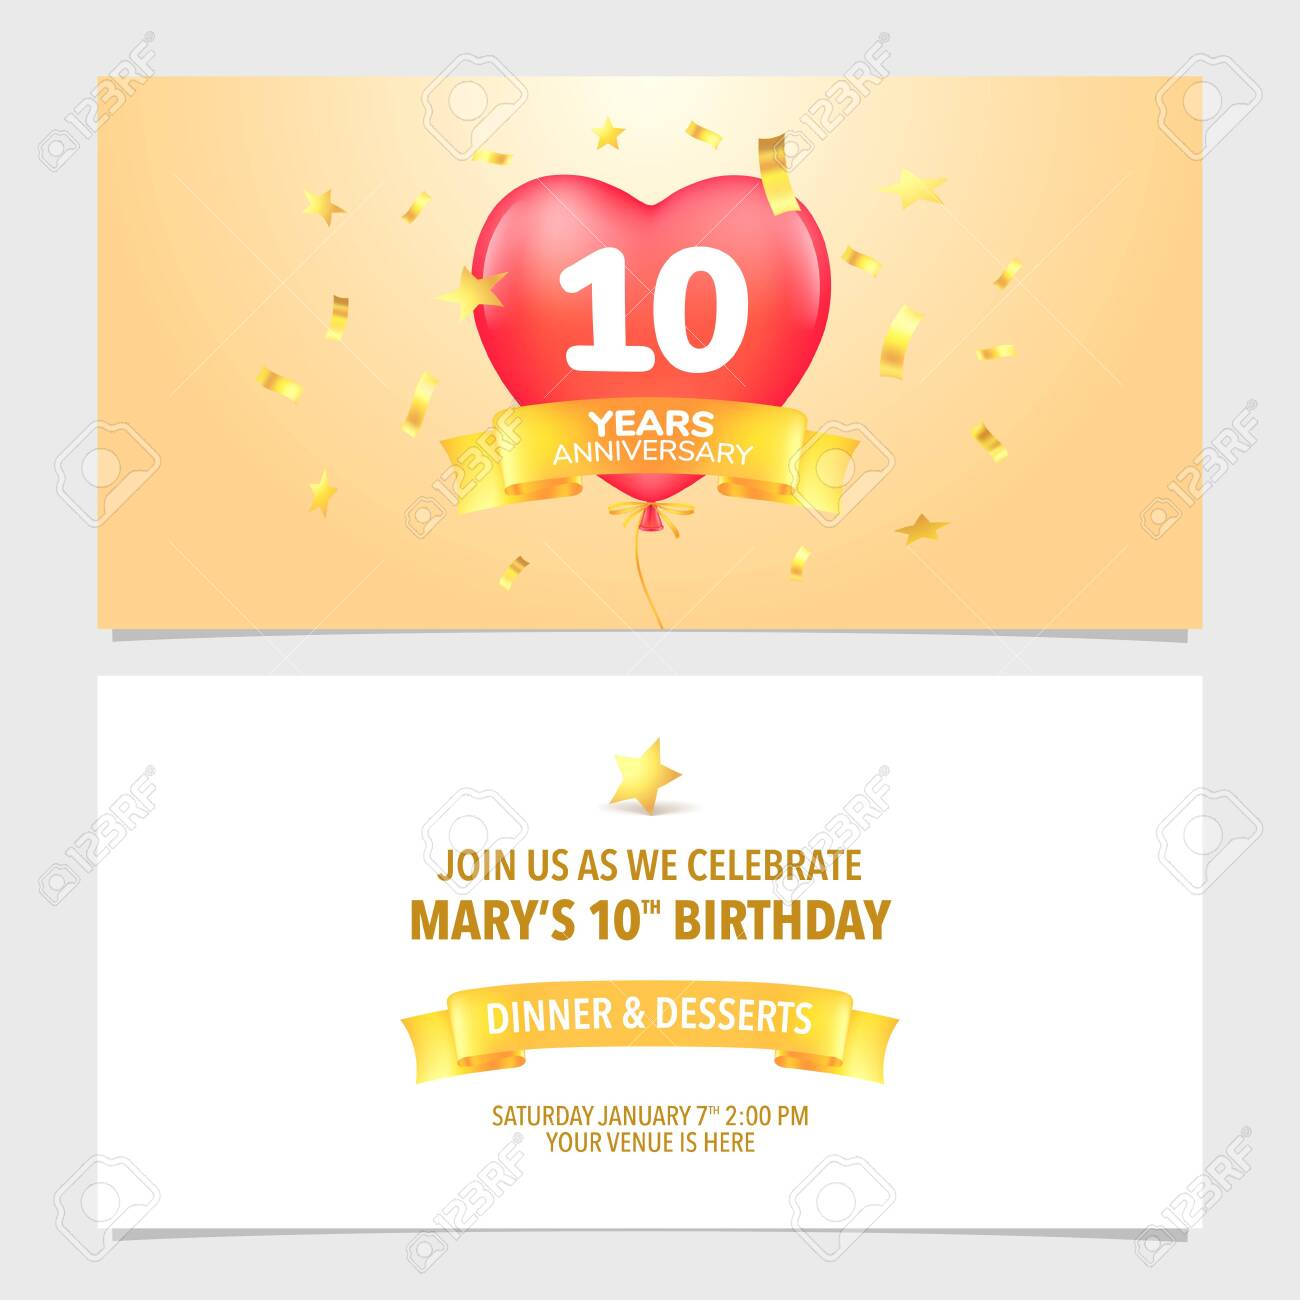 10 Years Anniversary Invitation Card Vector Illustration Design